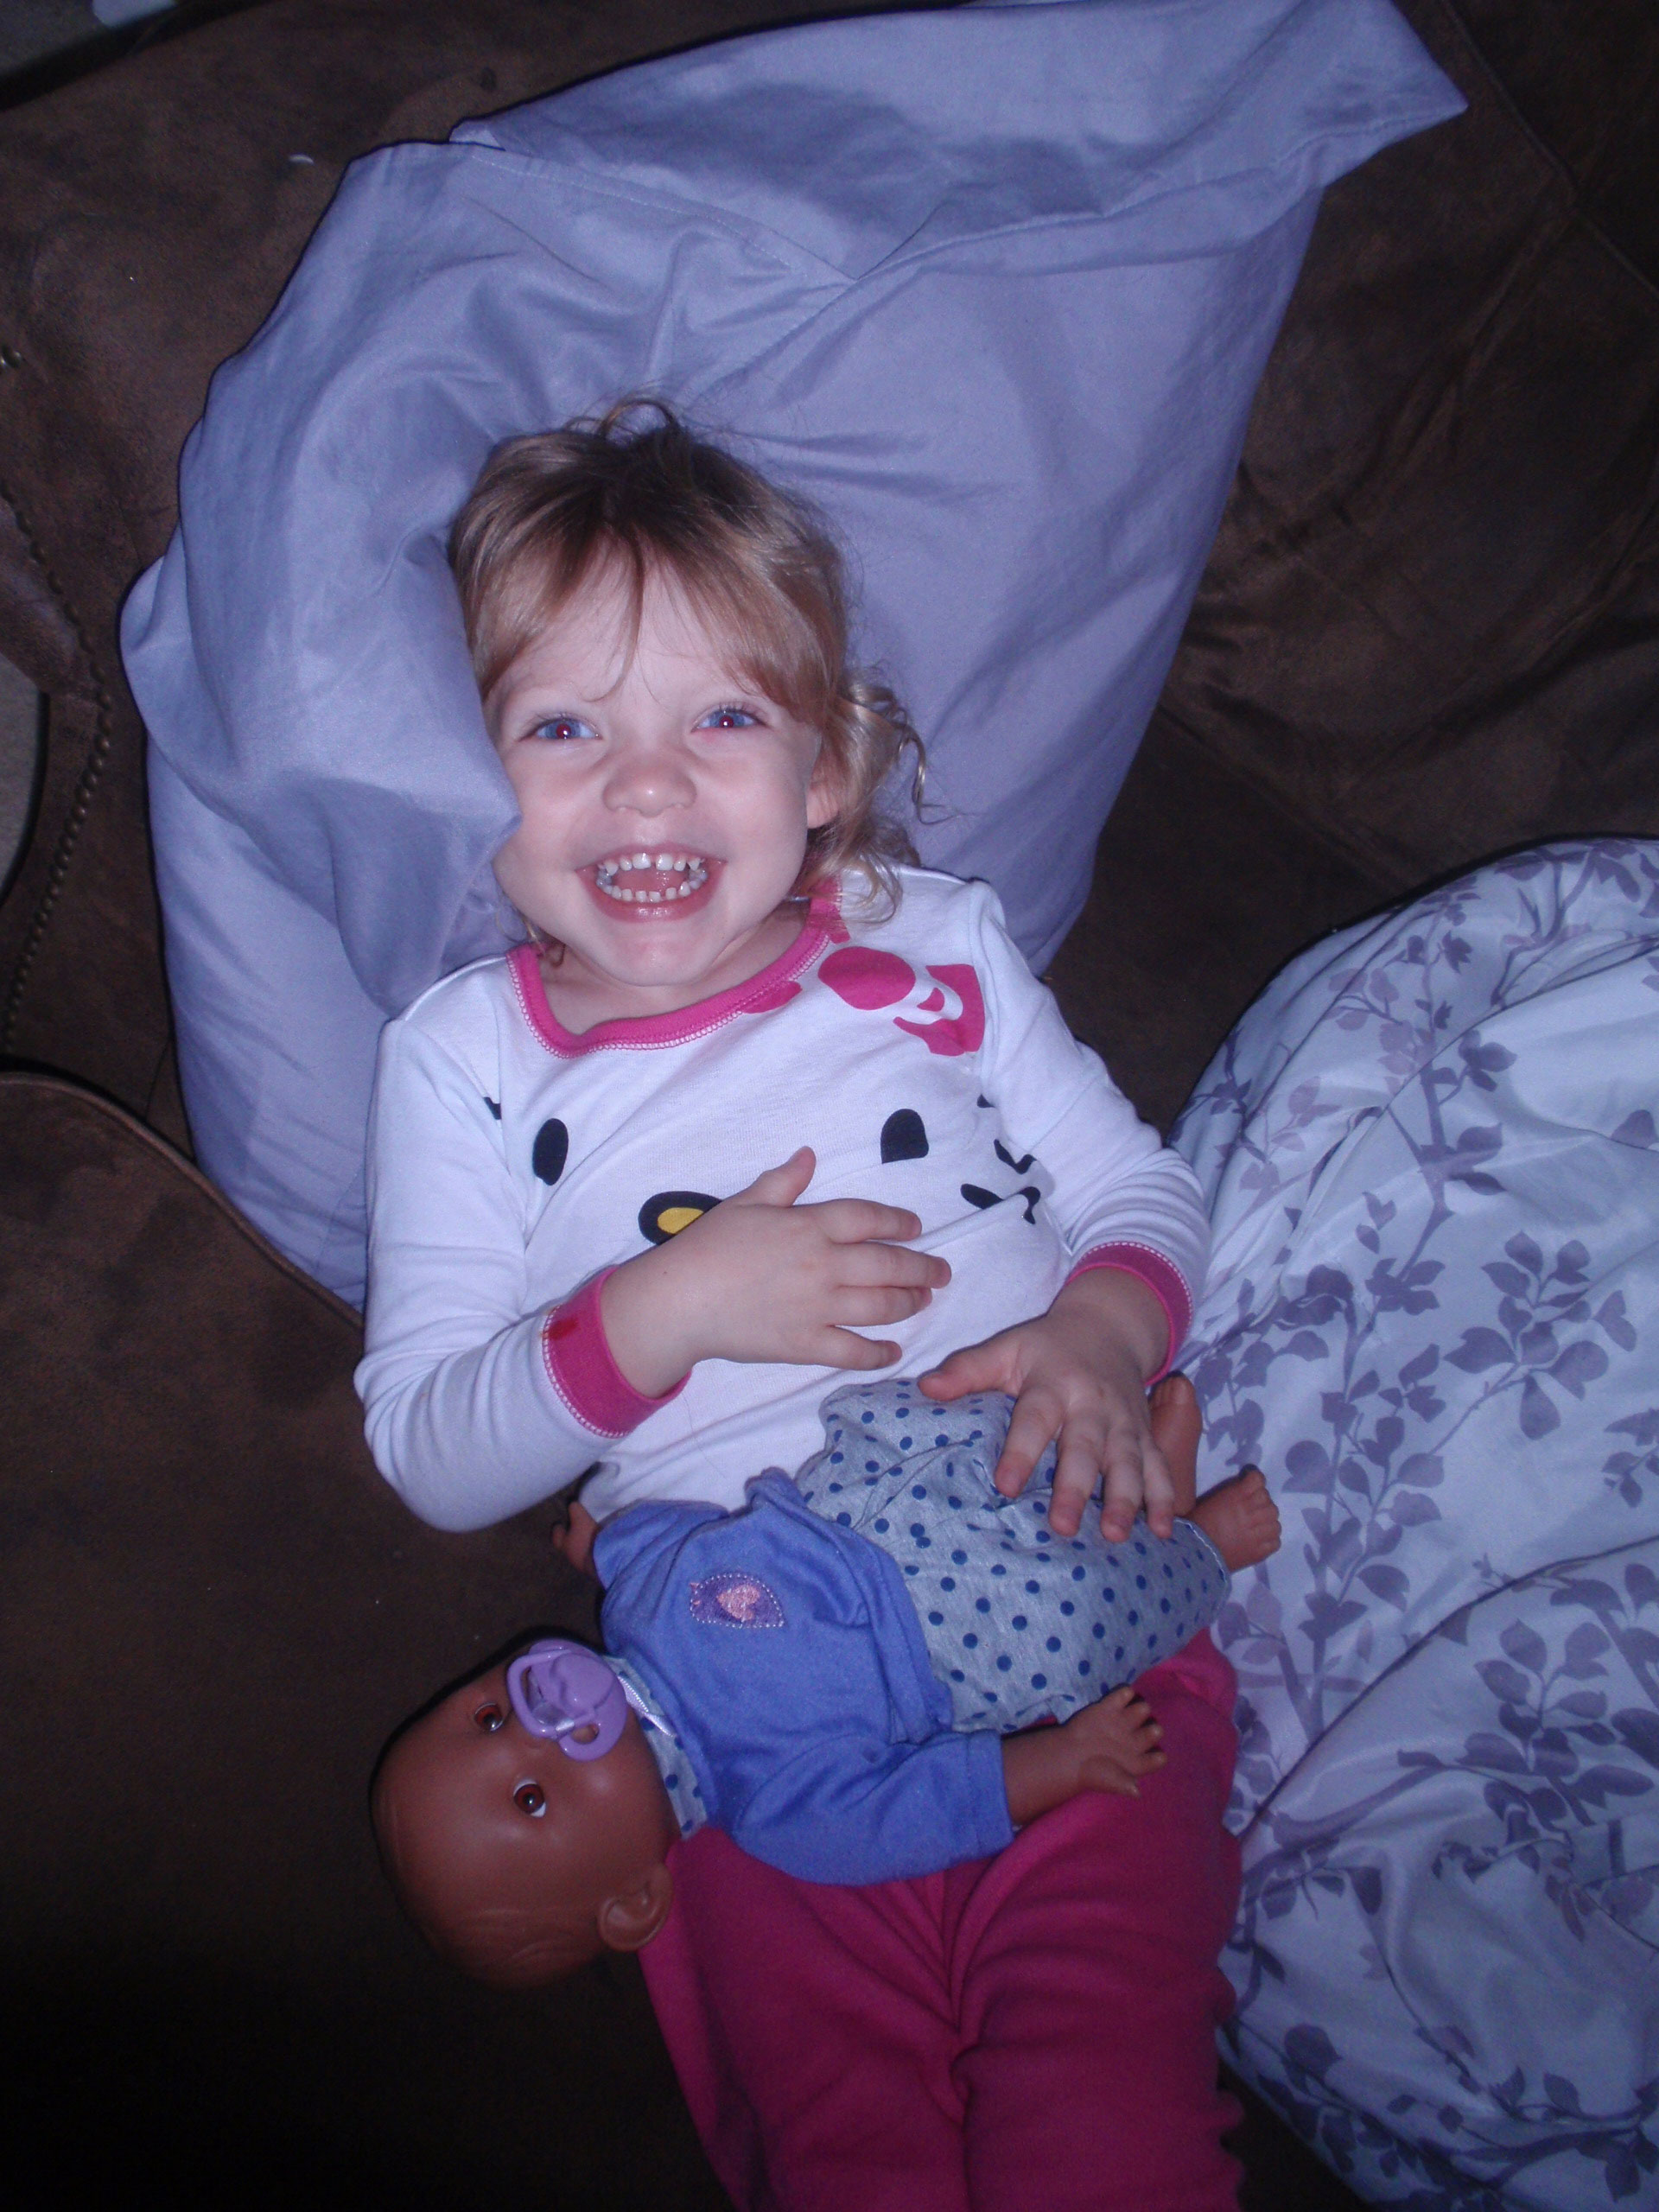 Addison and her Purple Baby 1